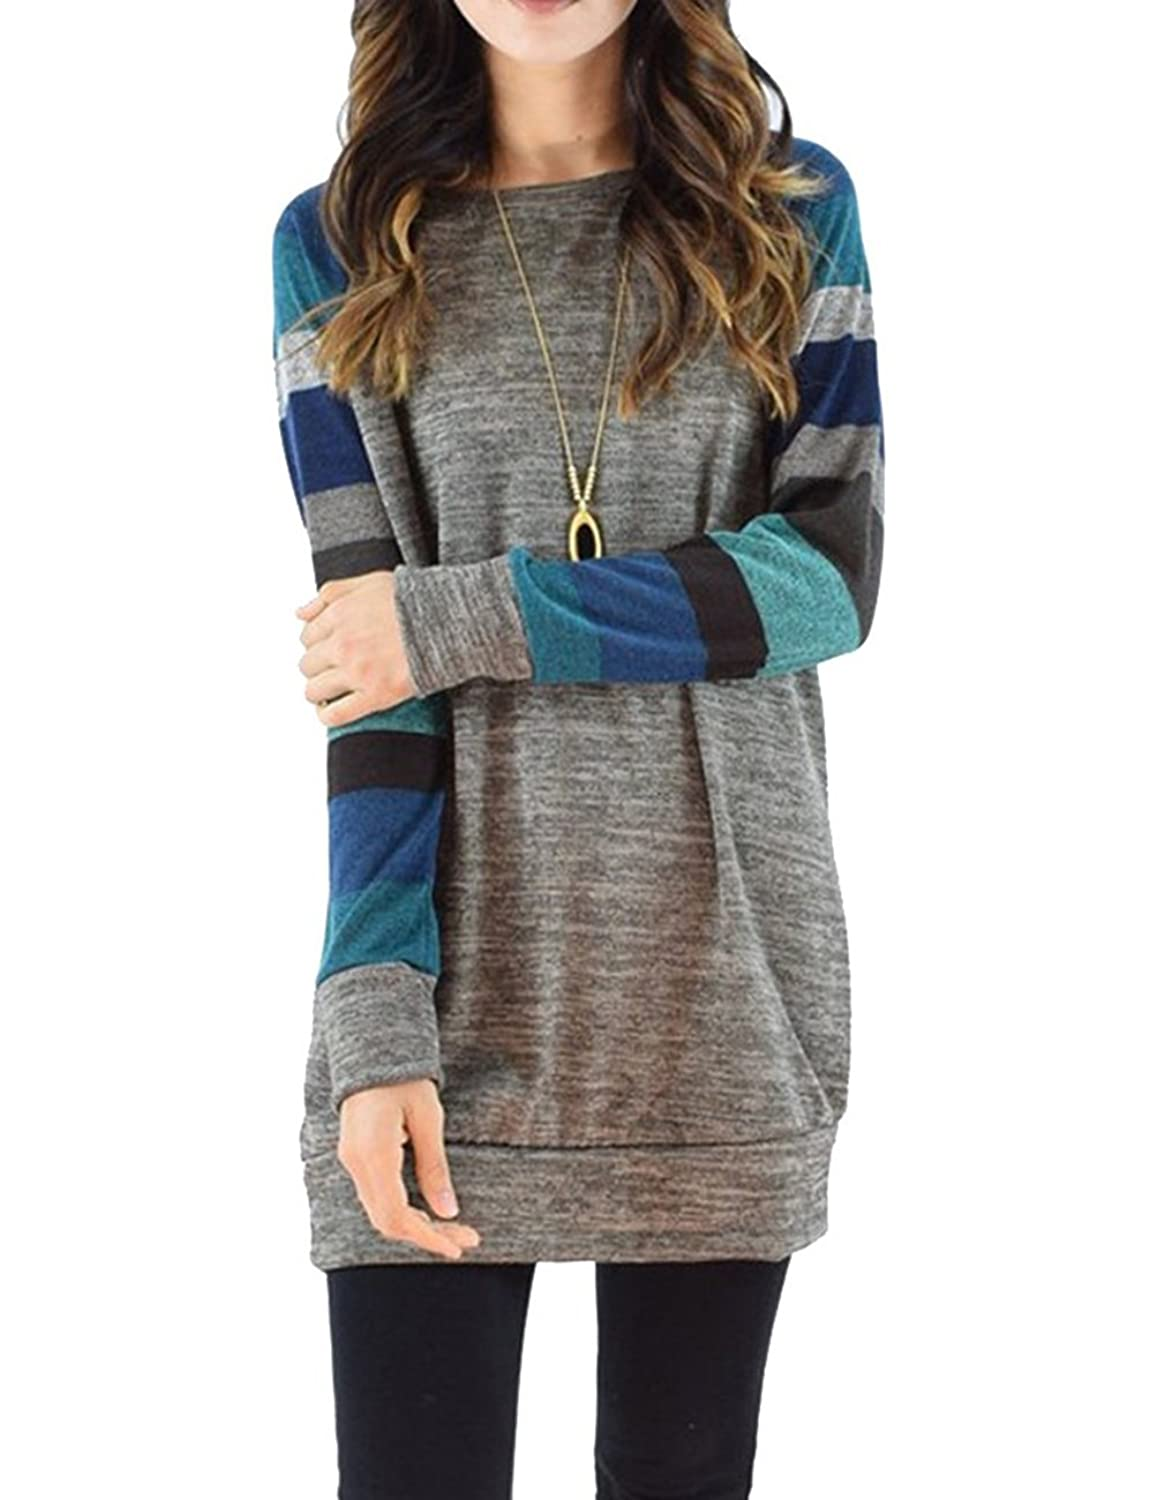 Leapparel Women's Cotton Knitted Long Sleeve Tunic Jumper Sweatshirt  Leisure T-Shirt Dress Tops: Amazon.co.uk: Clothing